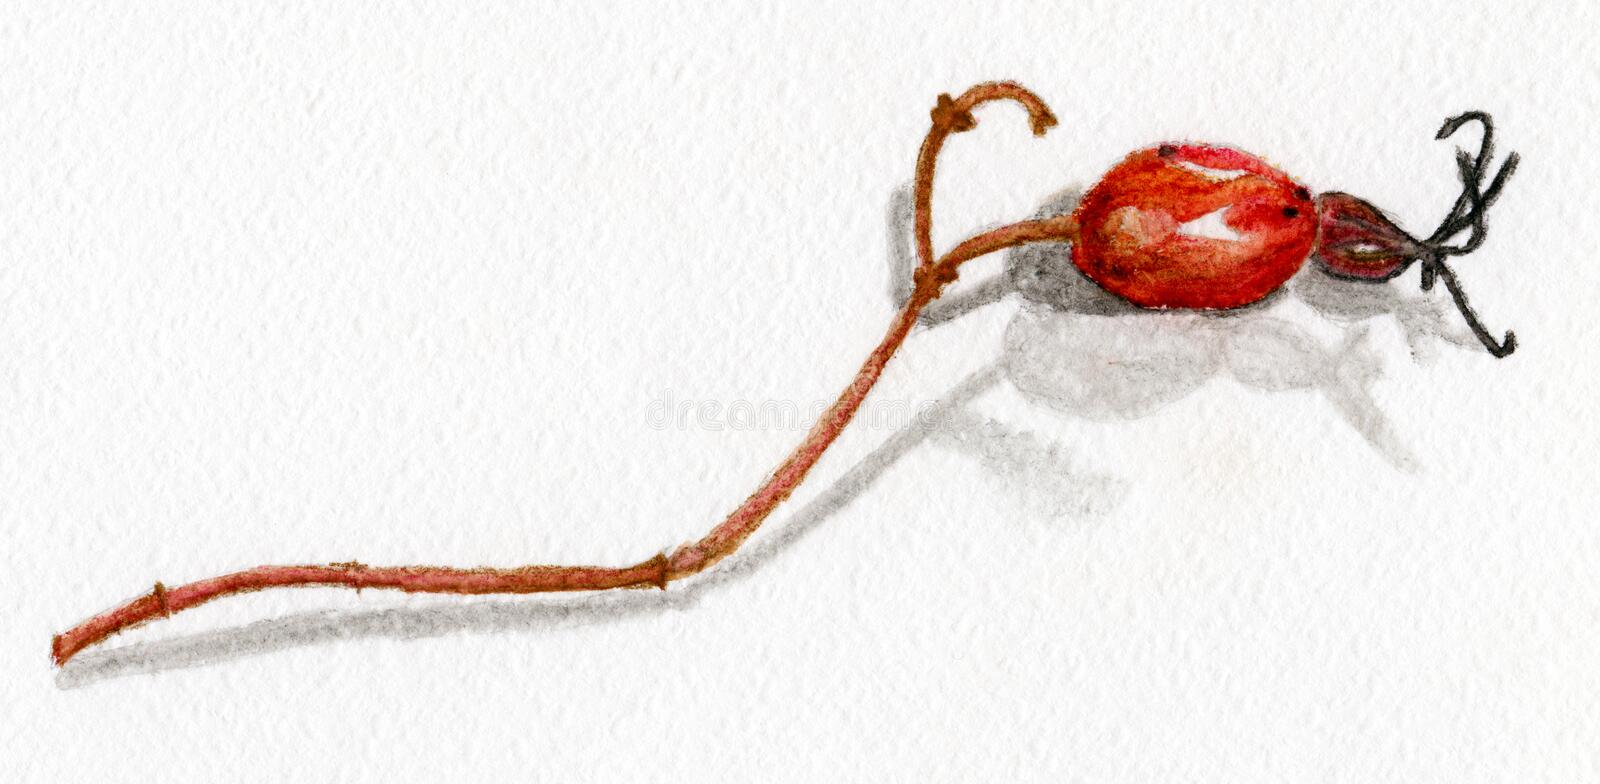 Rosehips watercolor royalty free stock image